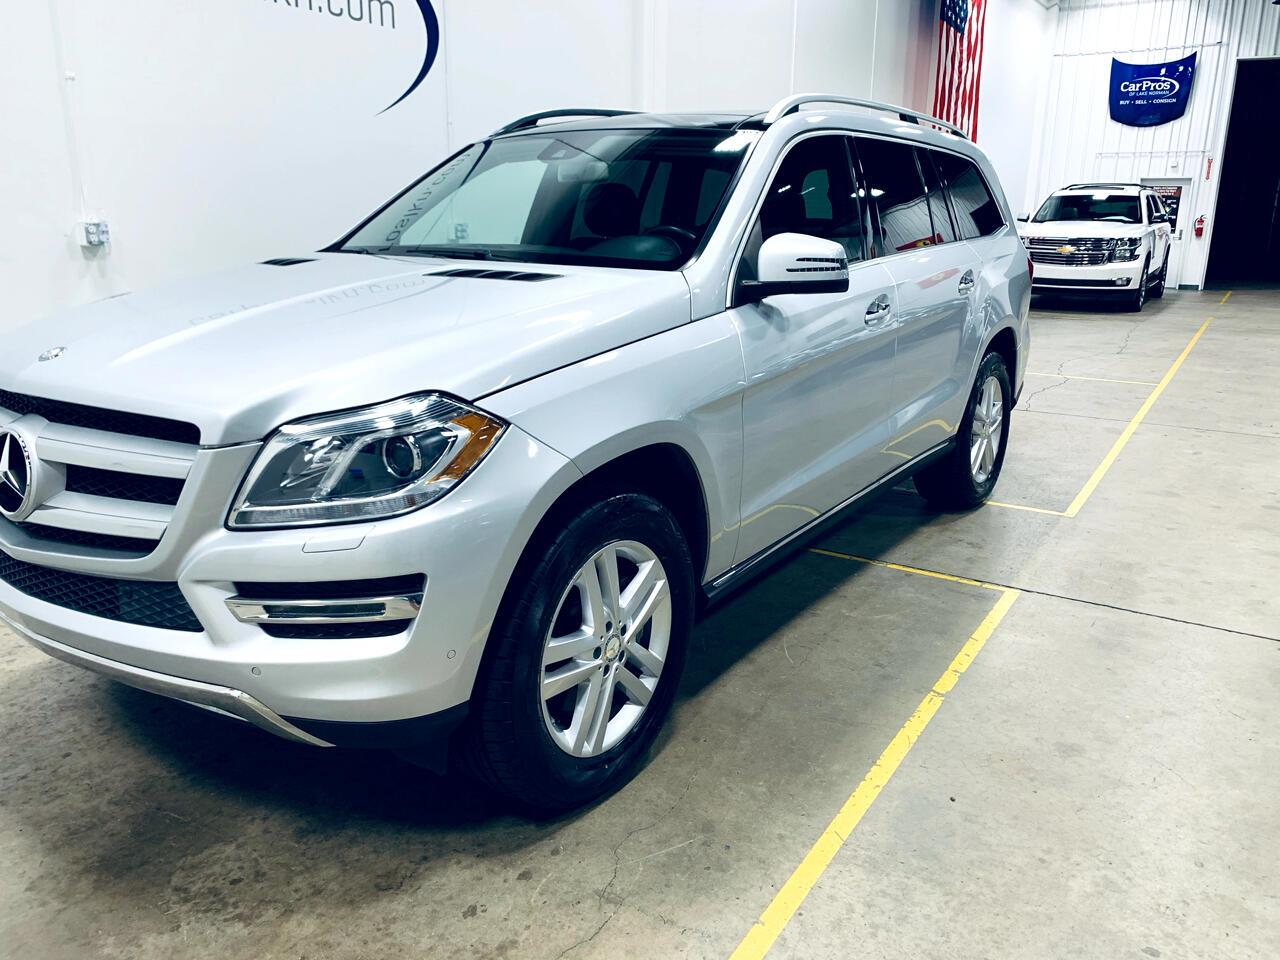 2016 Mercedes-Benz GL-Class (CC-1337749) for sale in Mooresville, North Carolina